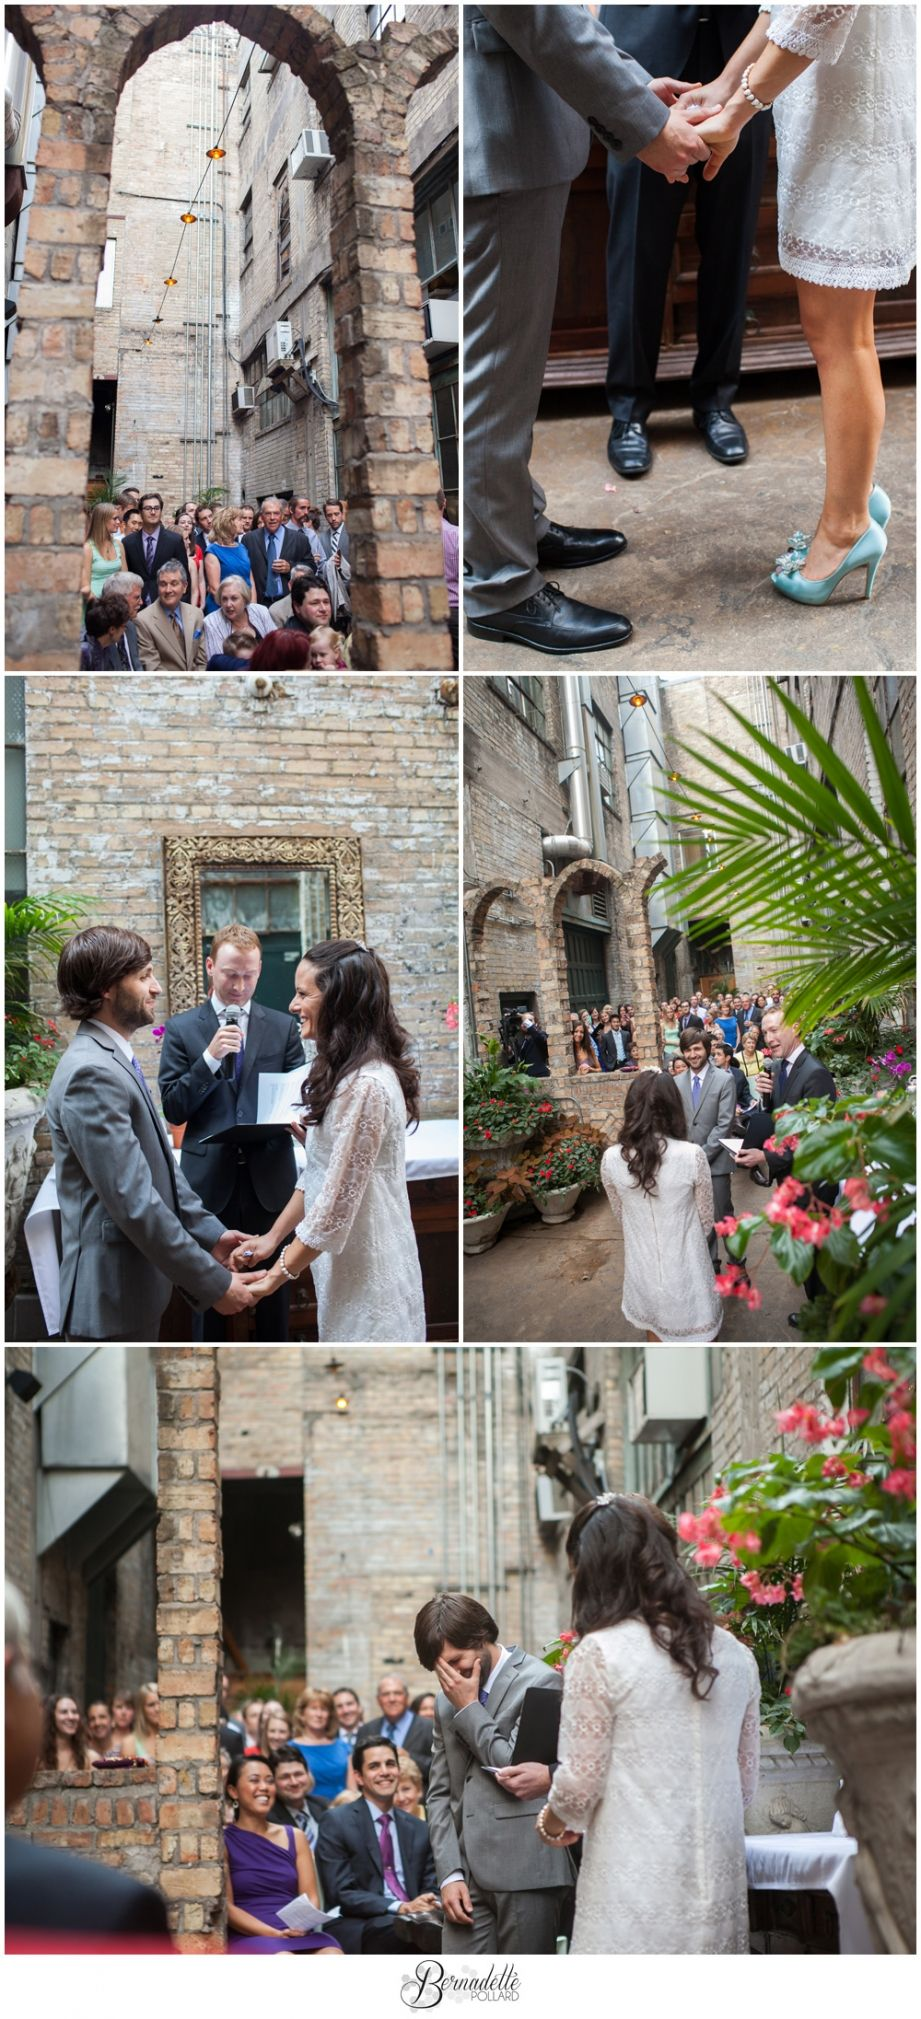 outdoor wedding venues minneapolis%0A cafe lurcat  minneapolis  small  intimate setting with exposed brick  walls  bringing